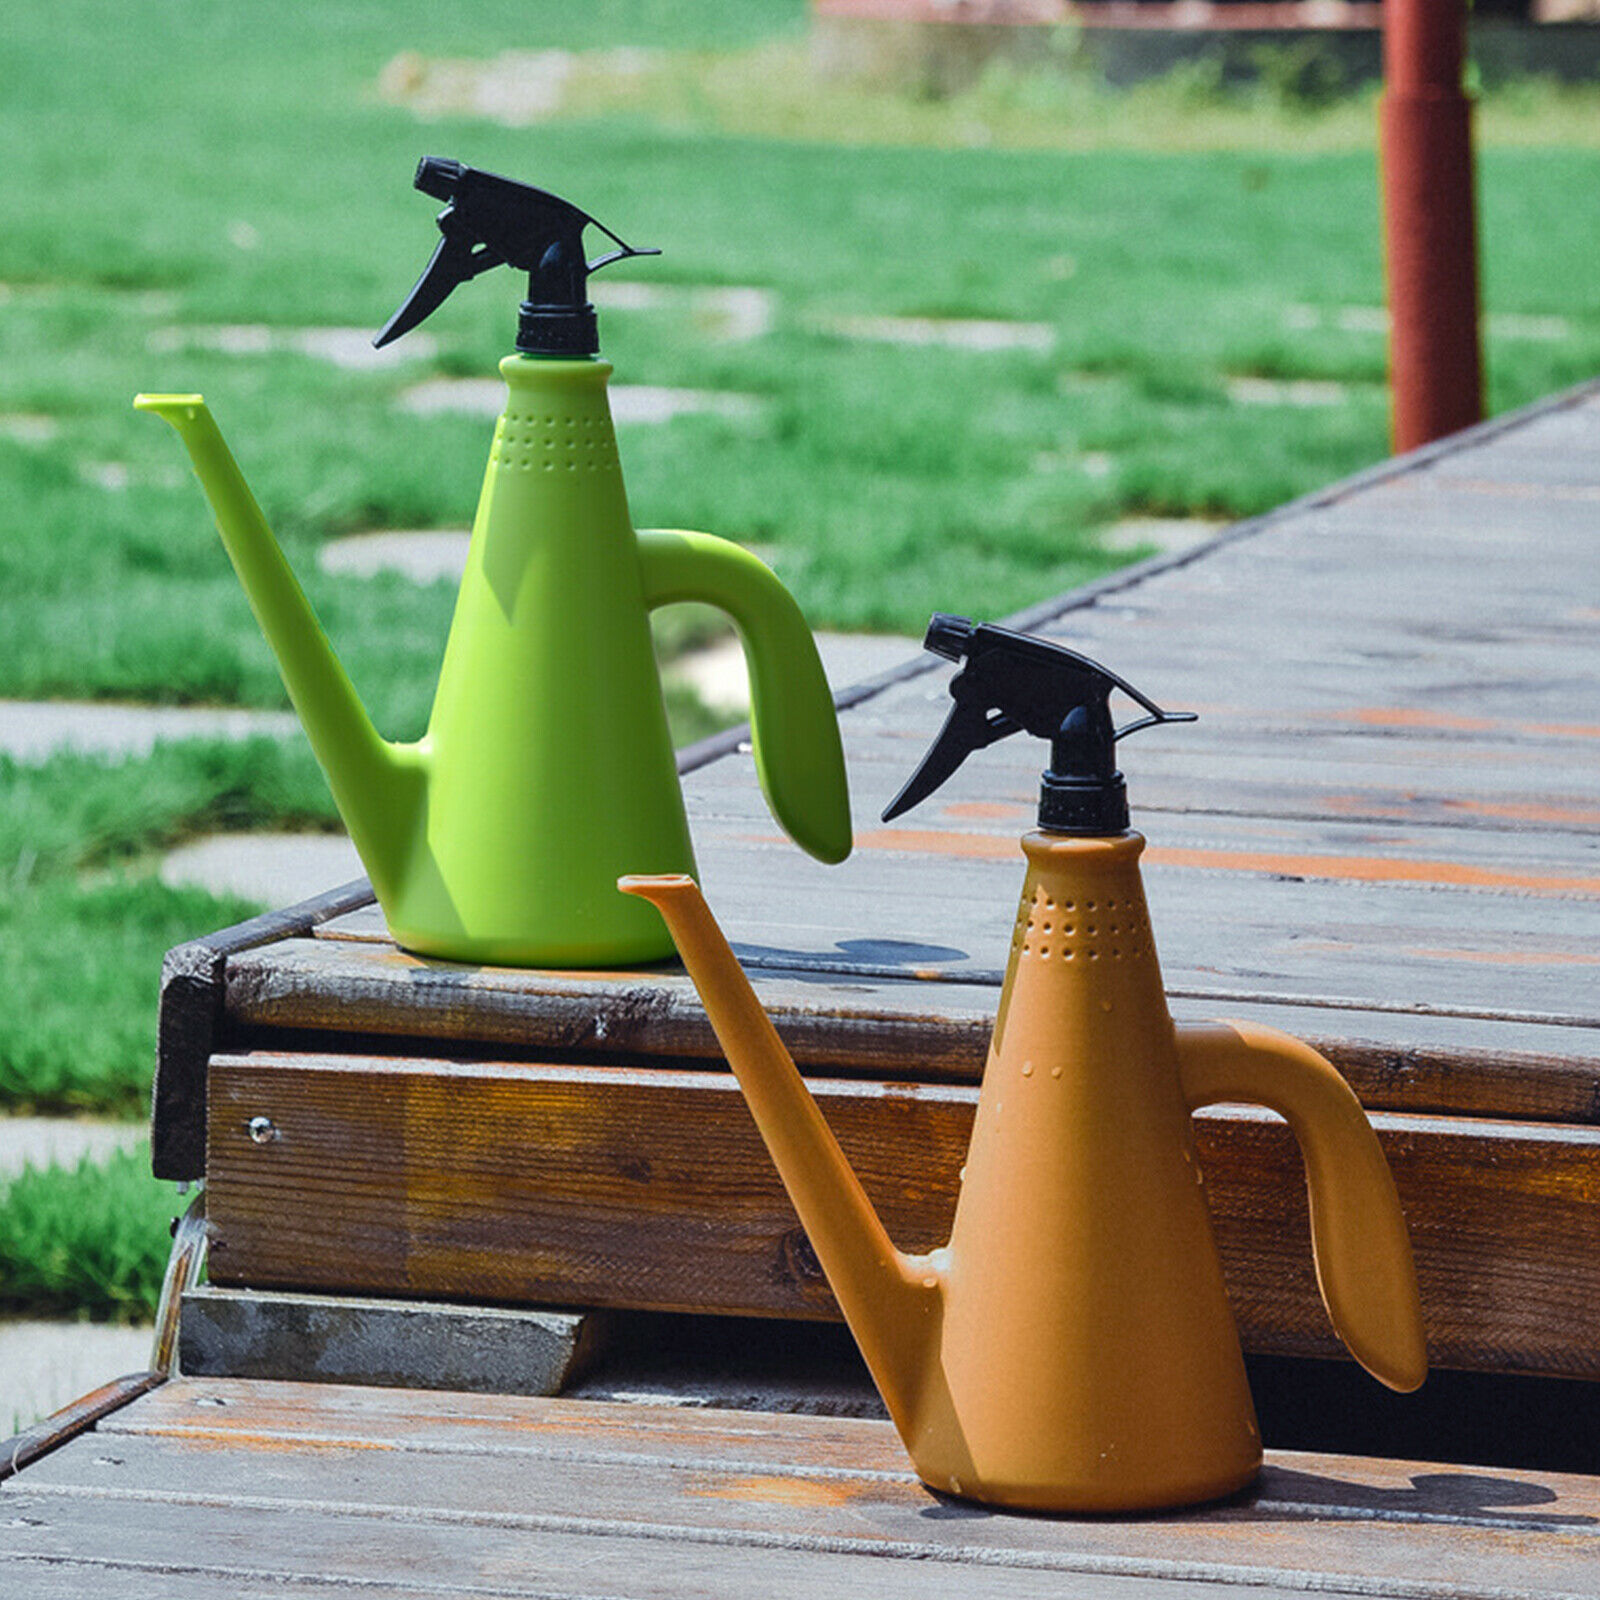 1L Indoor Small Watering Can Long Narrow Spout Sprinkler Sprayer Kettle Plants